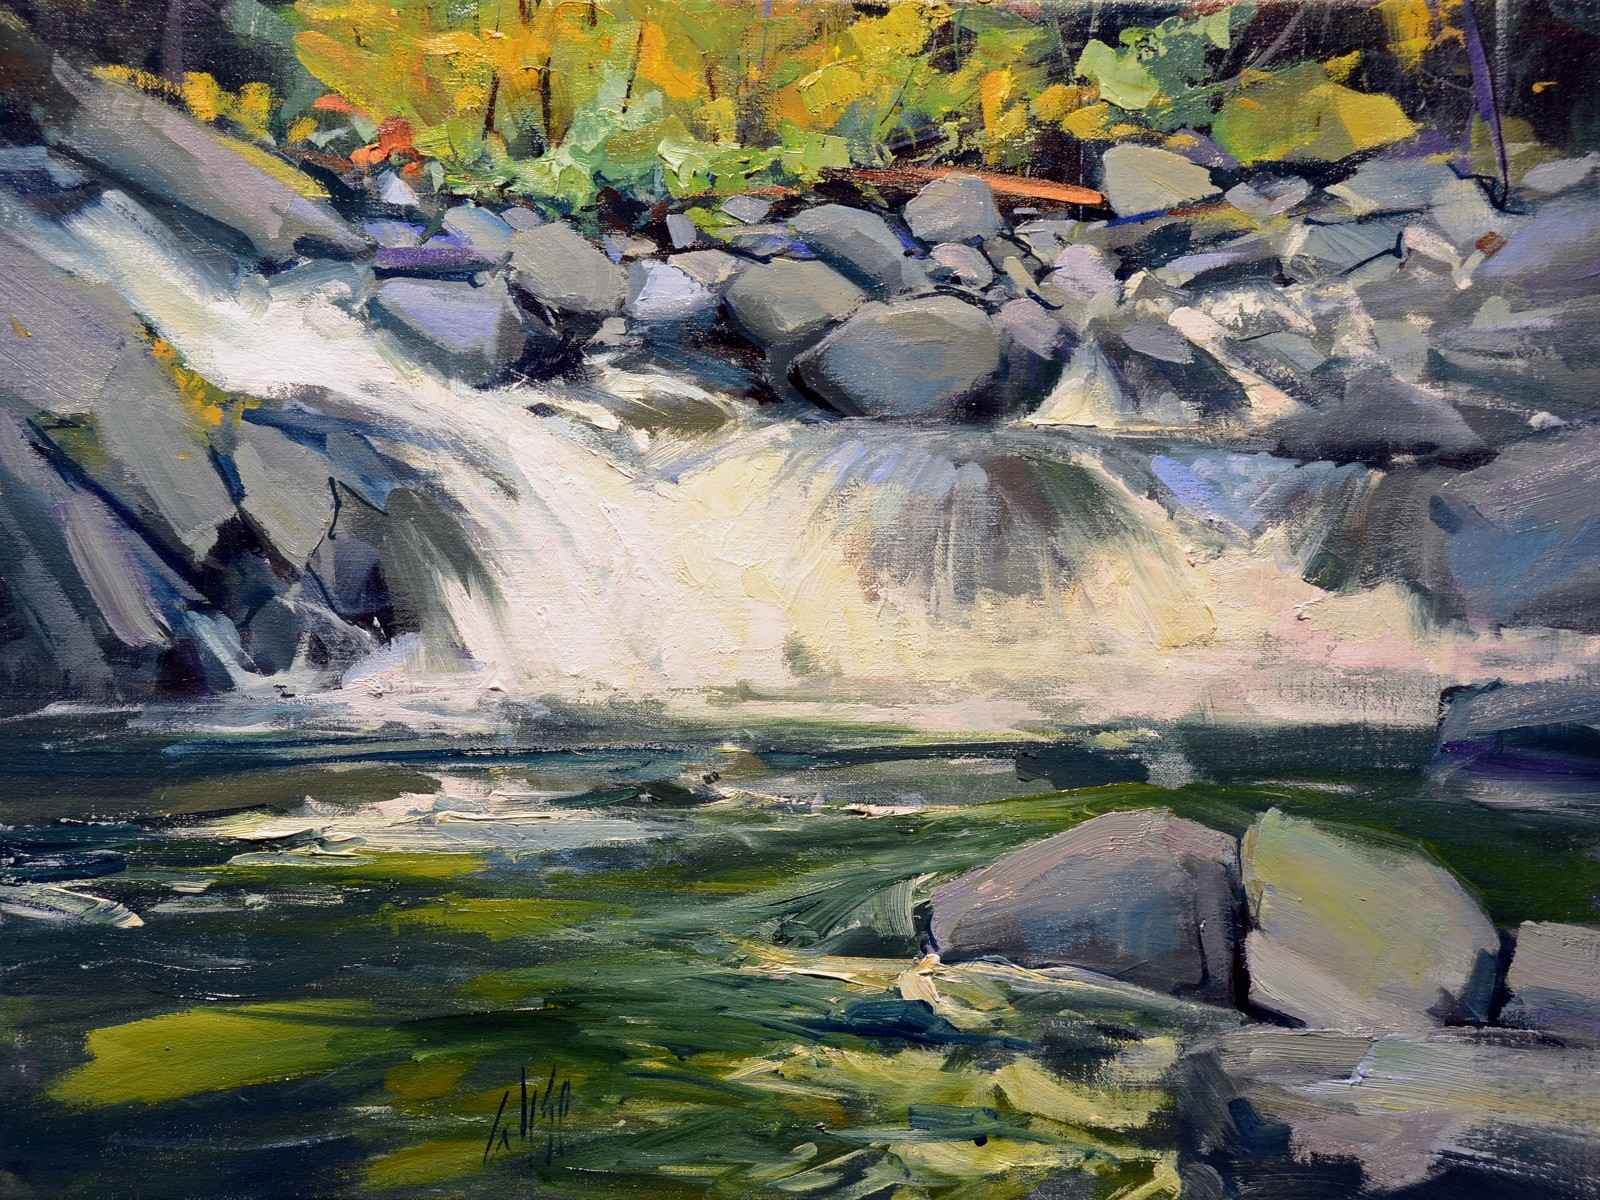 Deception Creek by  Mike Wise - Masterpiece Online